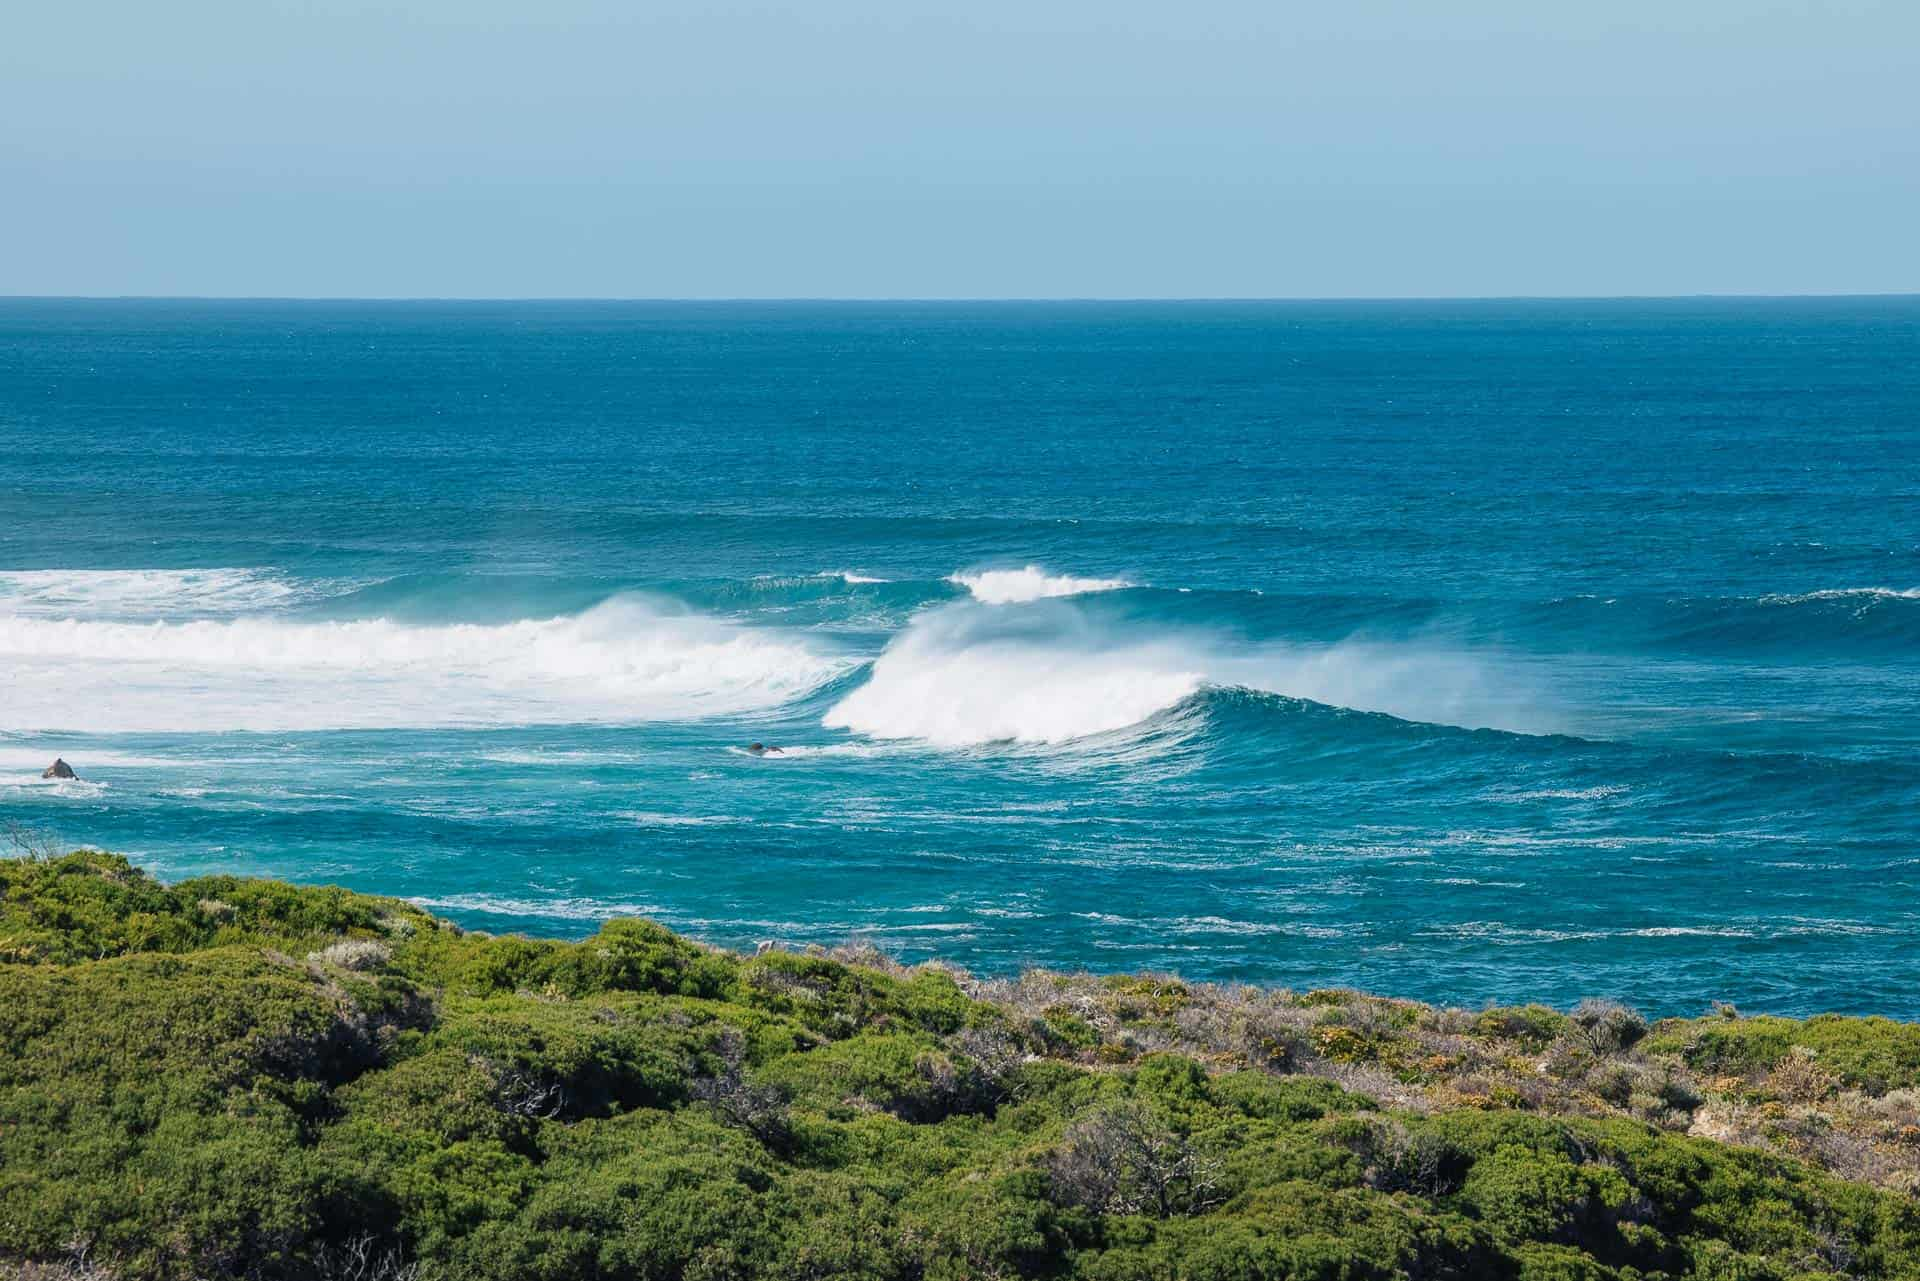 things to do in margaret river, what to do in margaret river, best things to do in margaret river, things to do margaret river, surfers point, surfers point margaret river